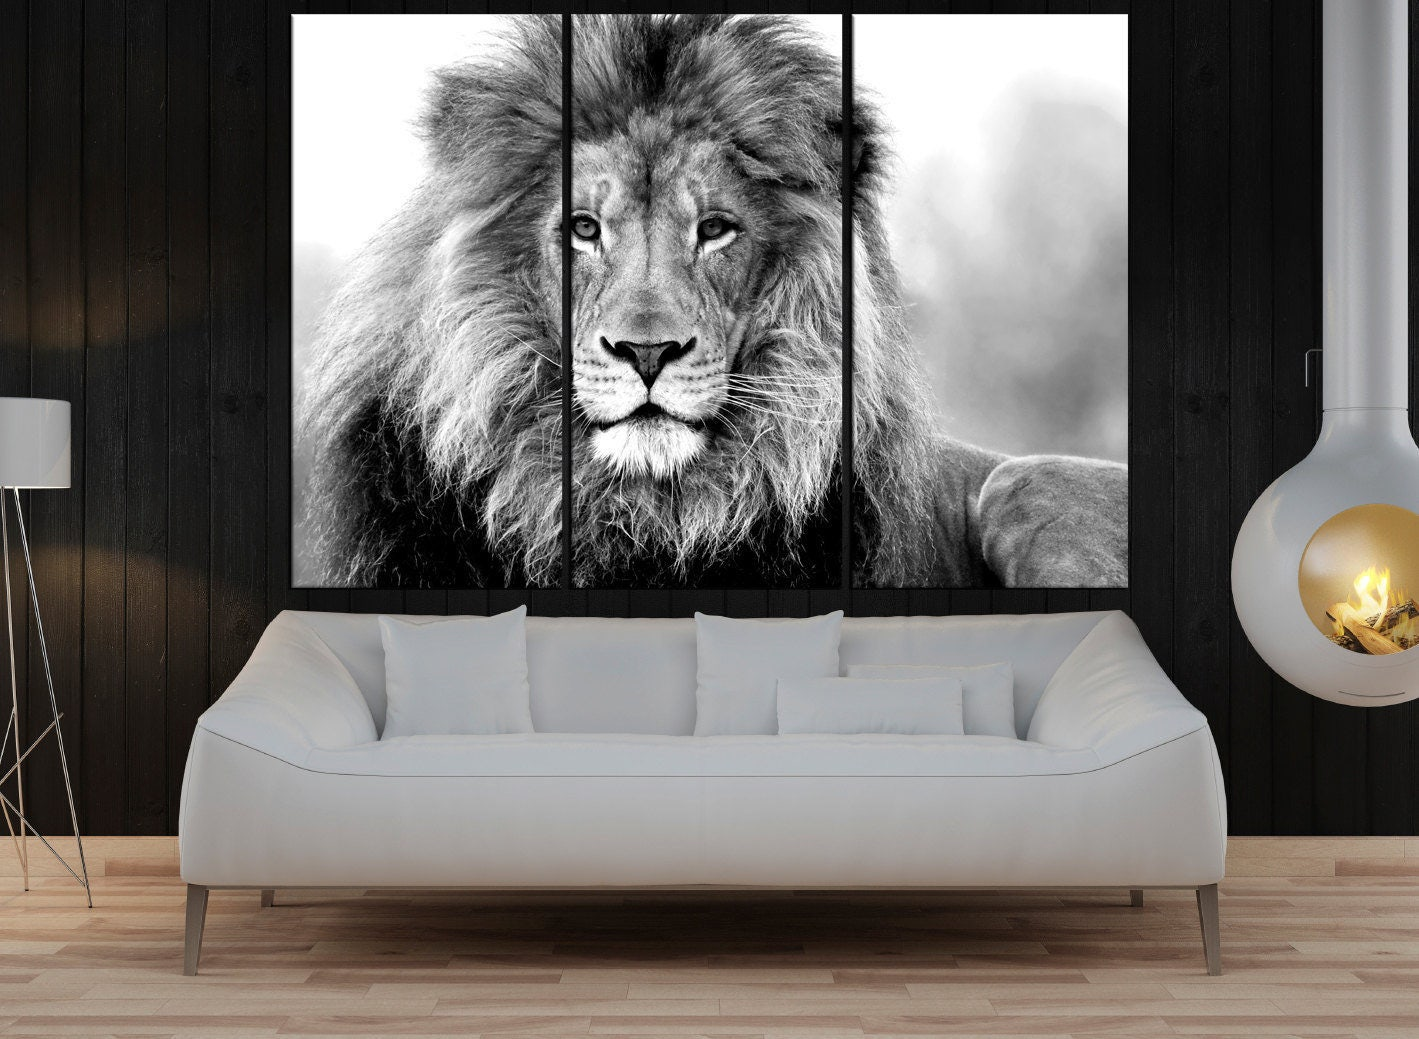 Black And White Lion Wall Art Canvas Print For Living